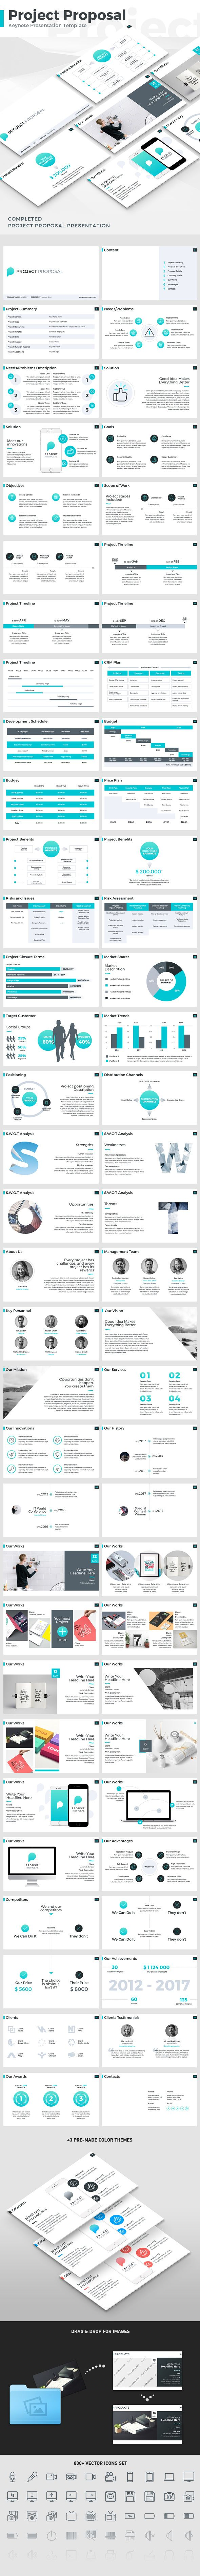 Project Proposal Keynote Design Template - Business Keynote Design Template. Download here: https://graphicriver.net/item/project-proposal-keynote-template/19326205?ref=yinkira